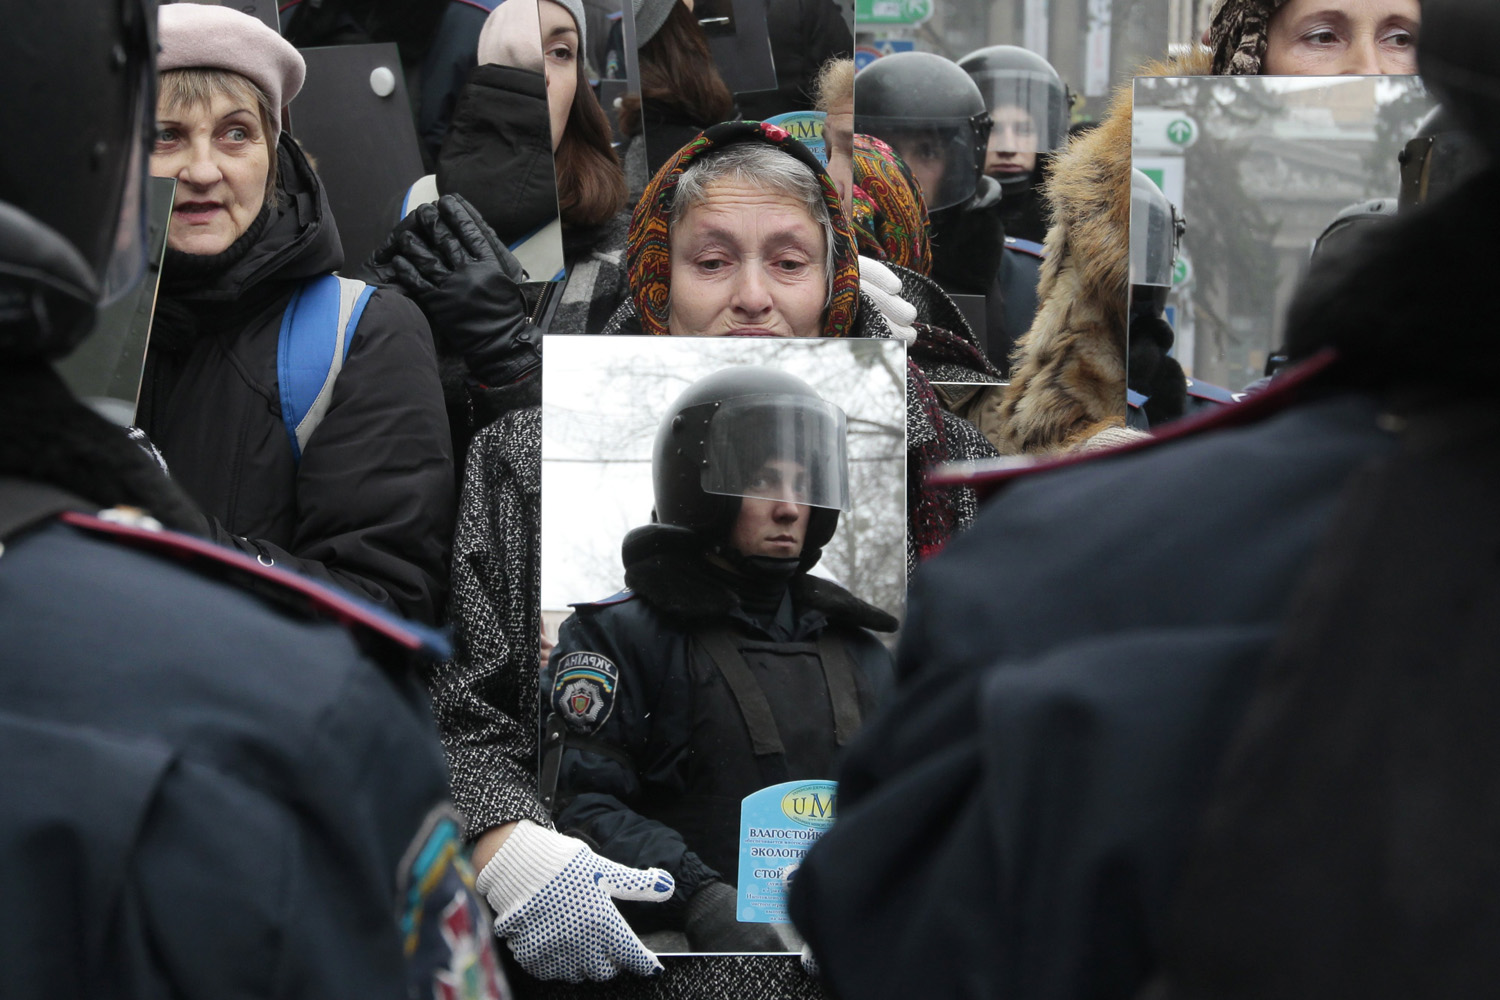 Dec. 30, 2013. A pro-European demonstrator holds a mirror which reflects a group of riot police officers standing guard in Kiev, Ukraine.